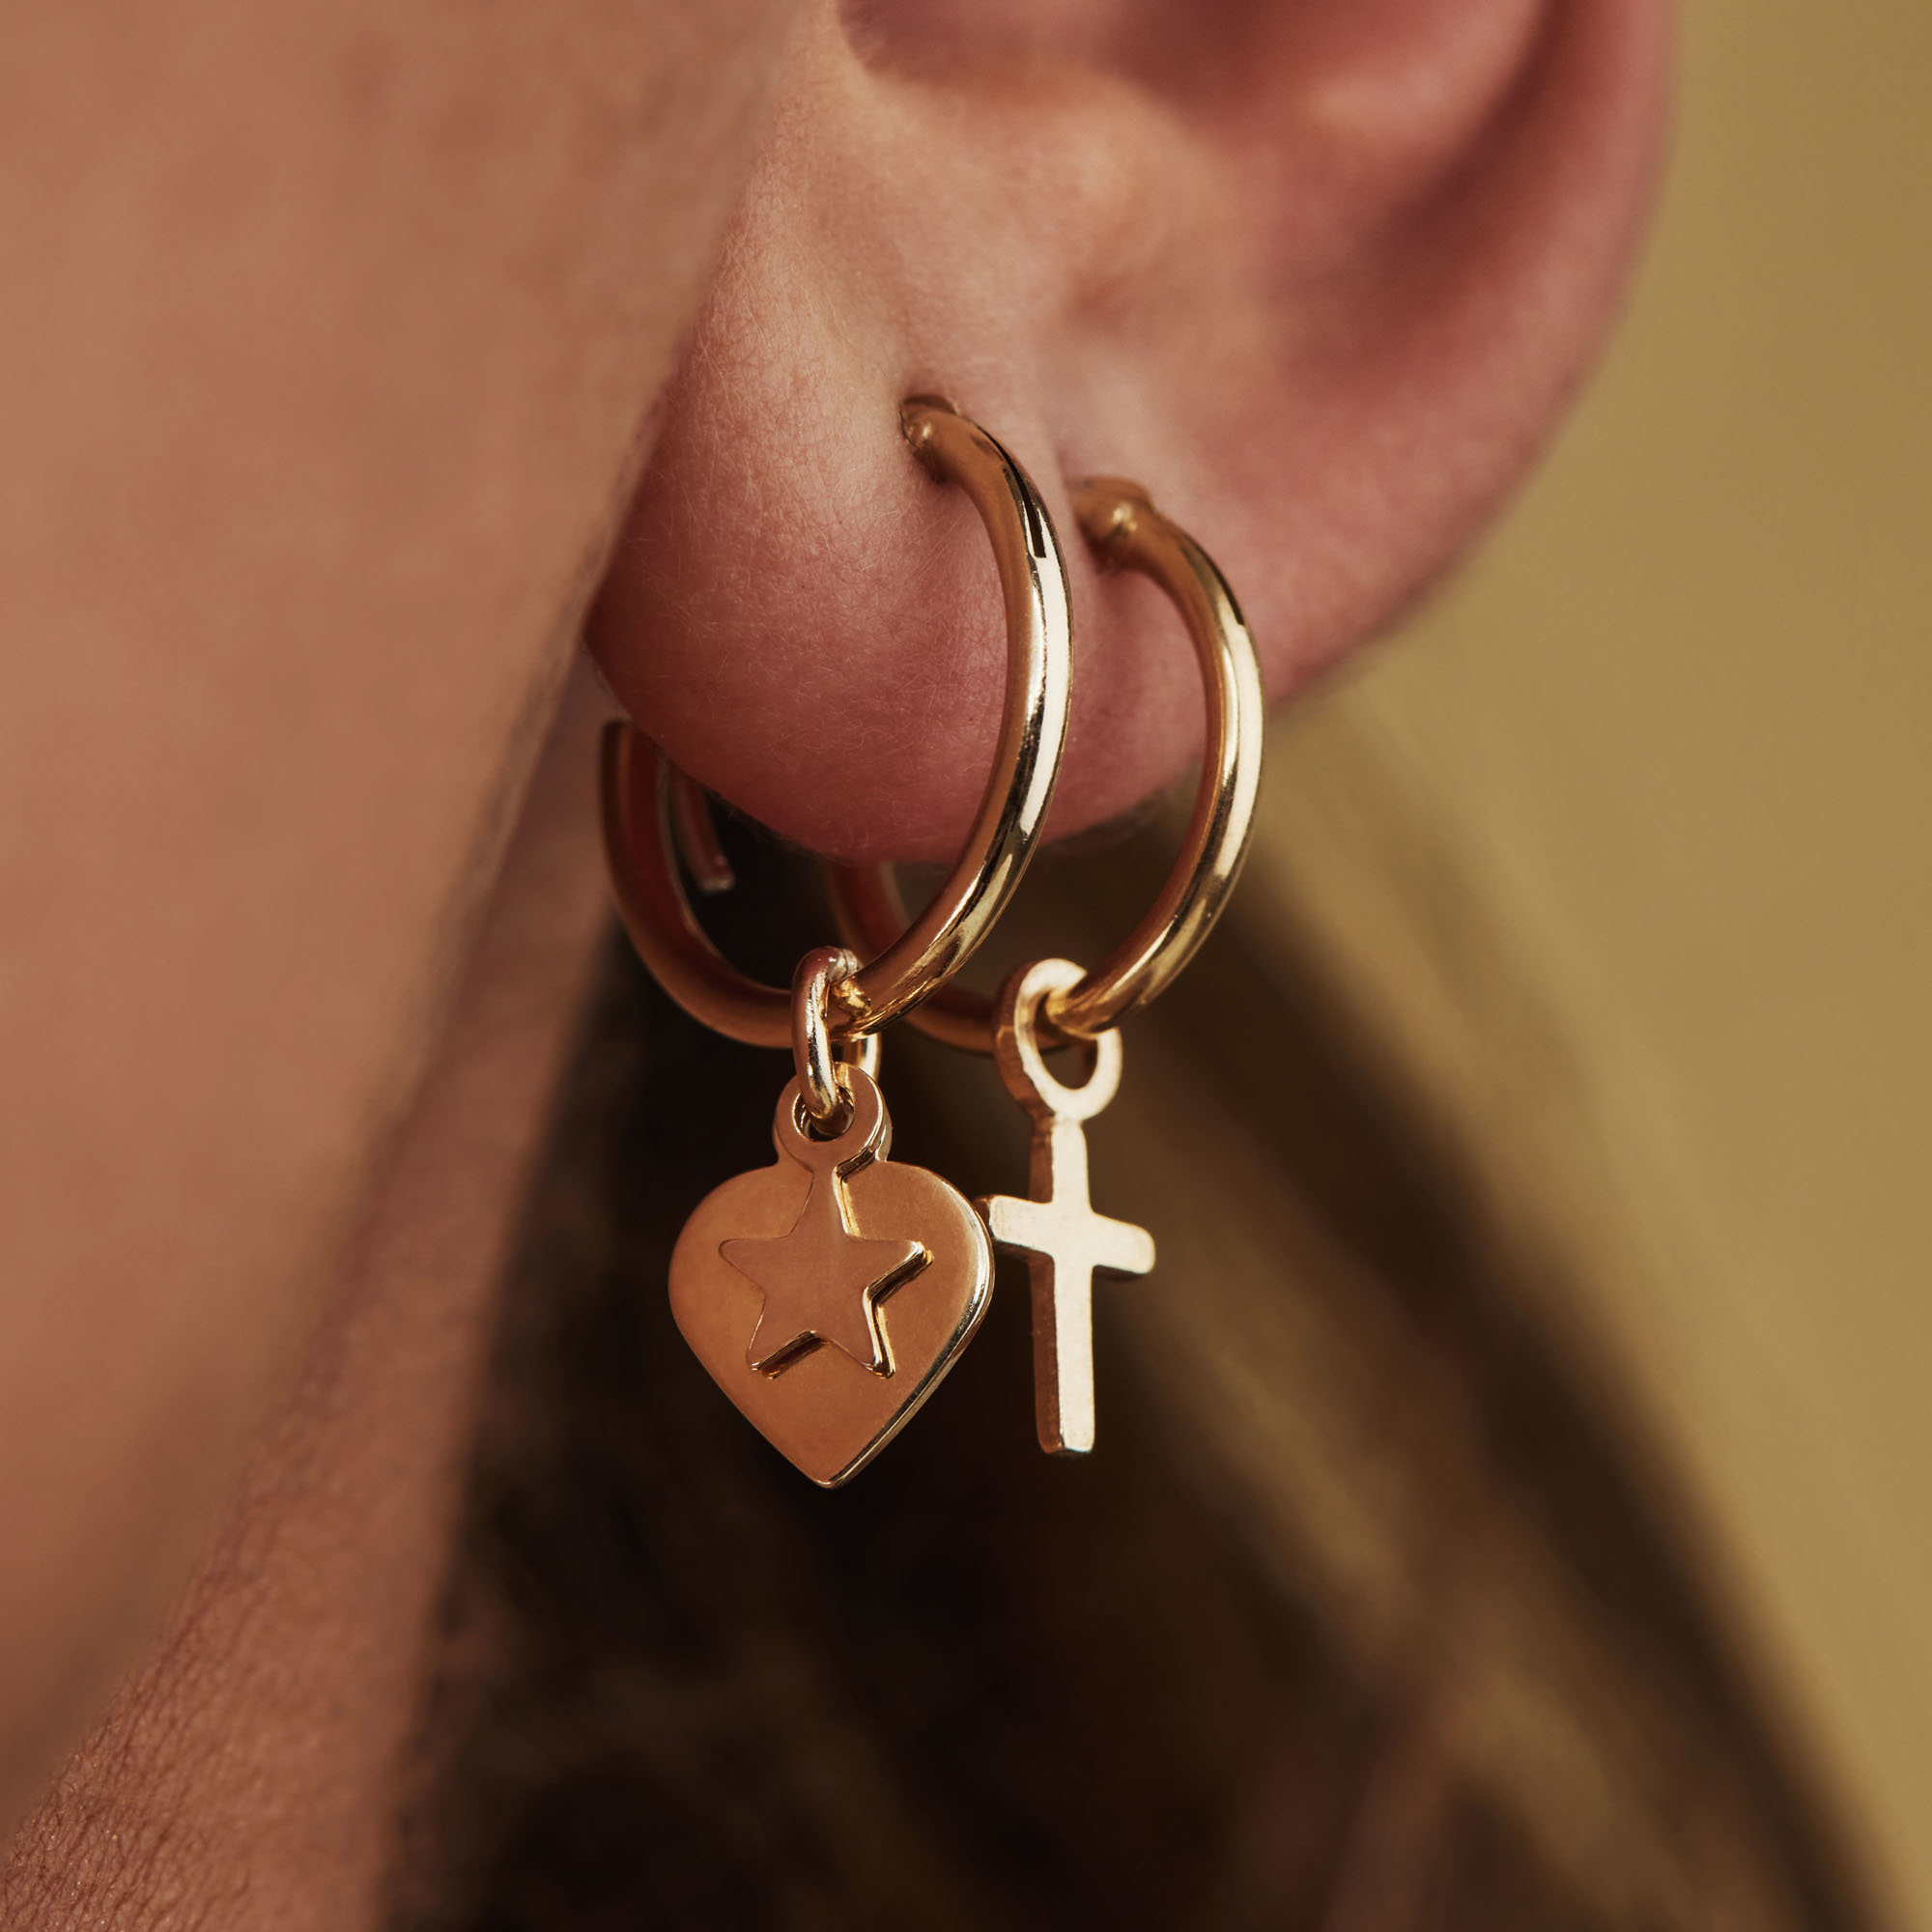 Selected Jewels Julie Esthée 925 sterling silver gold colored hoop earrings with hearts and stars